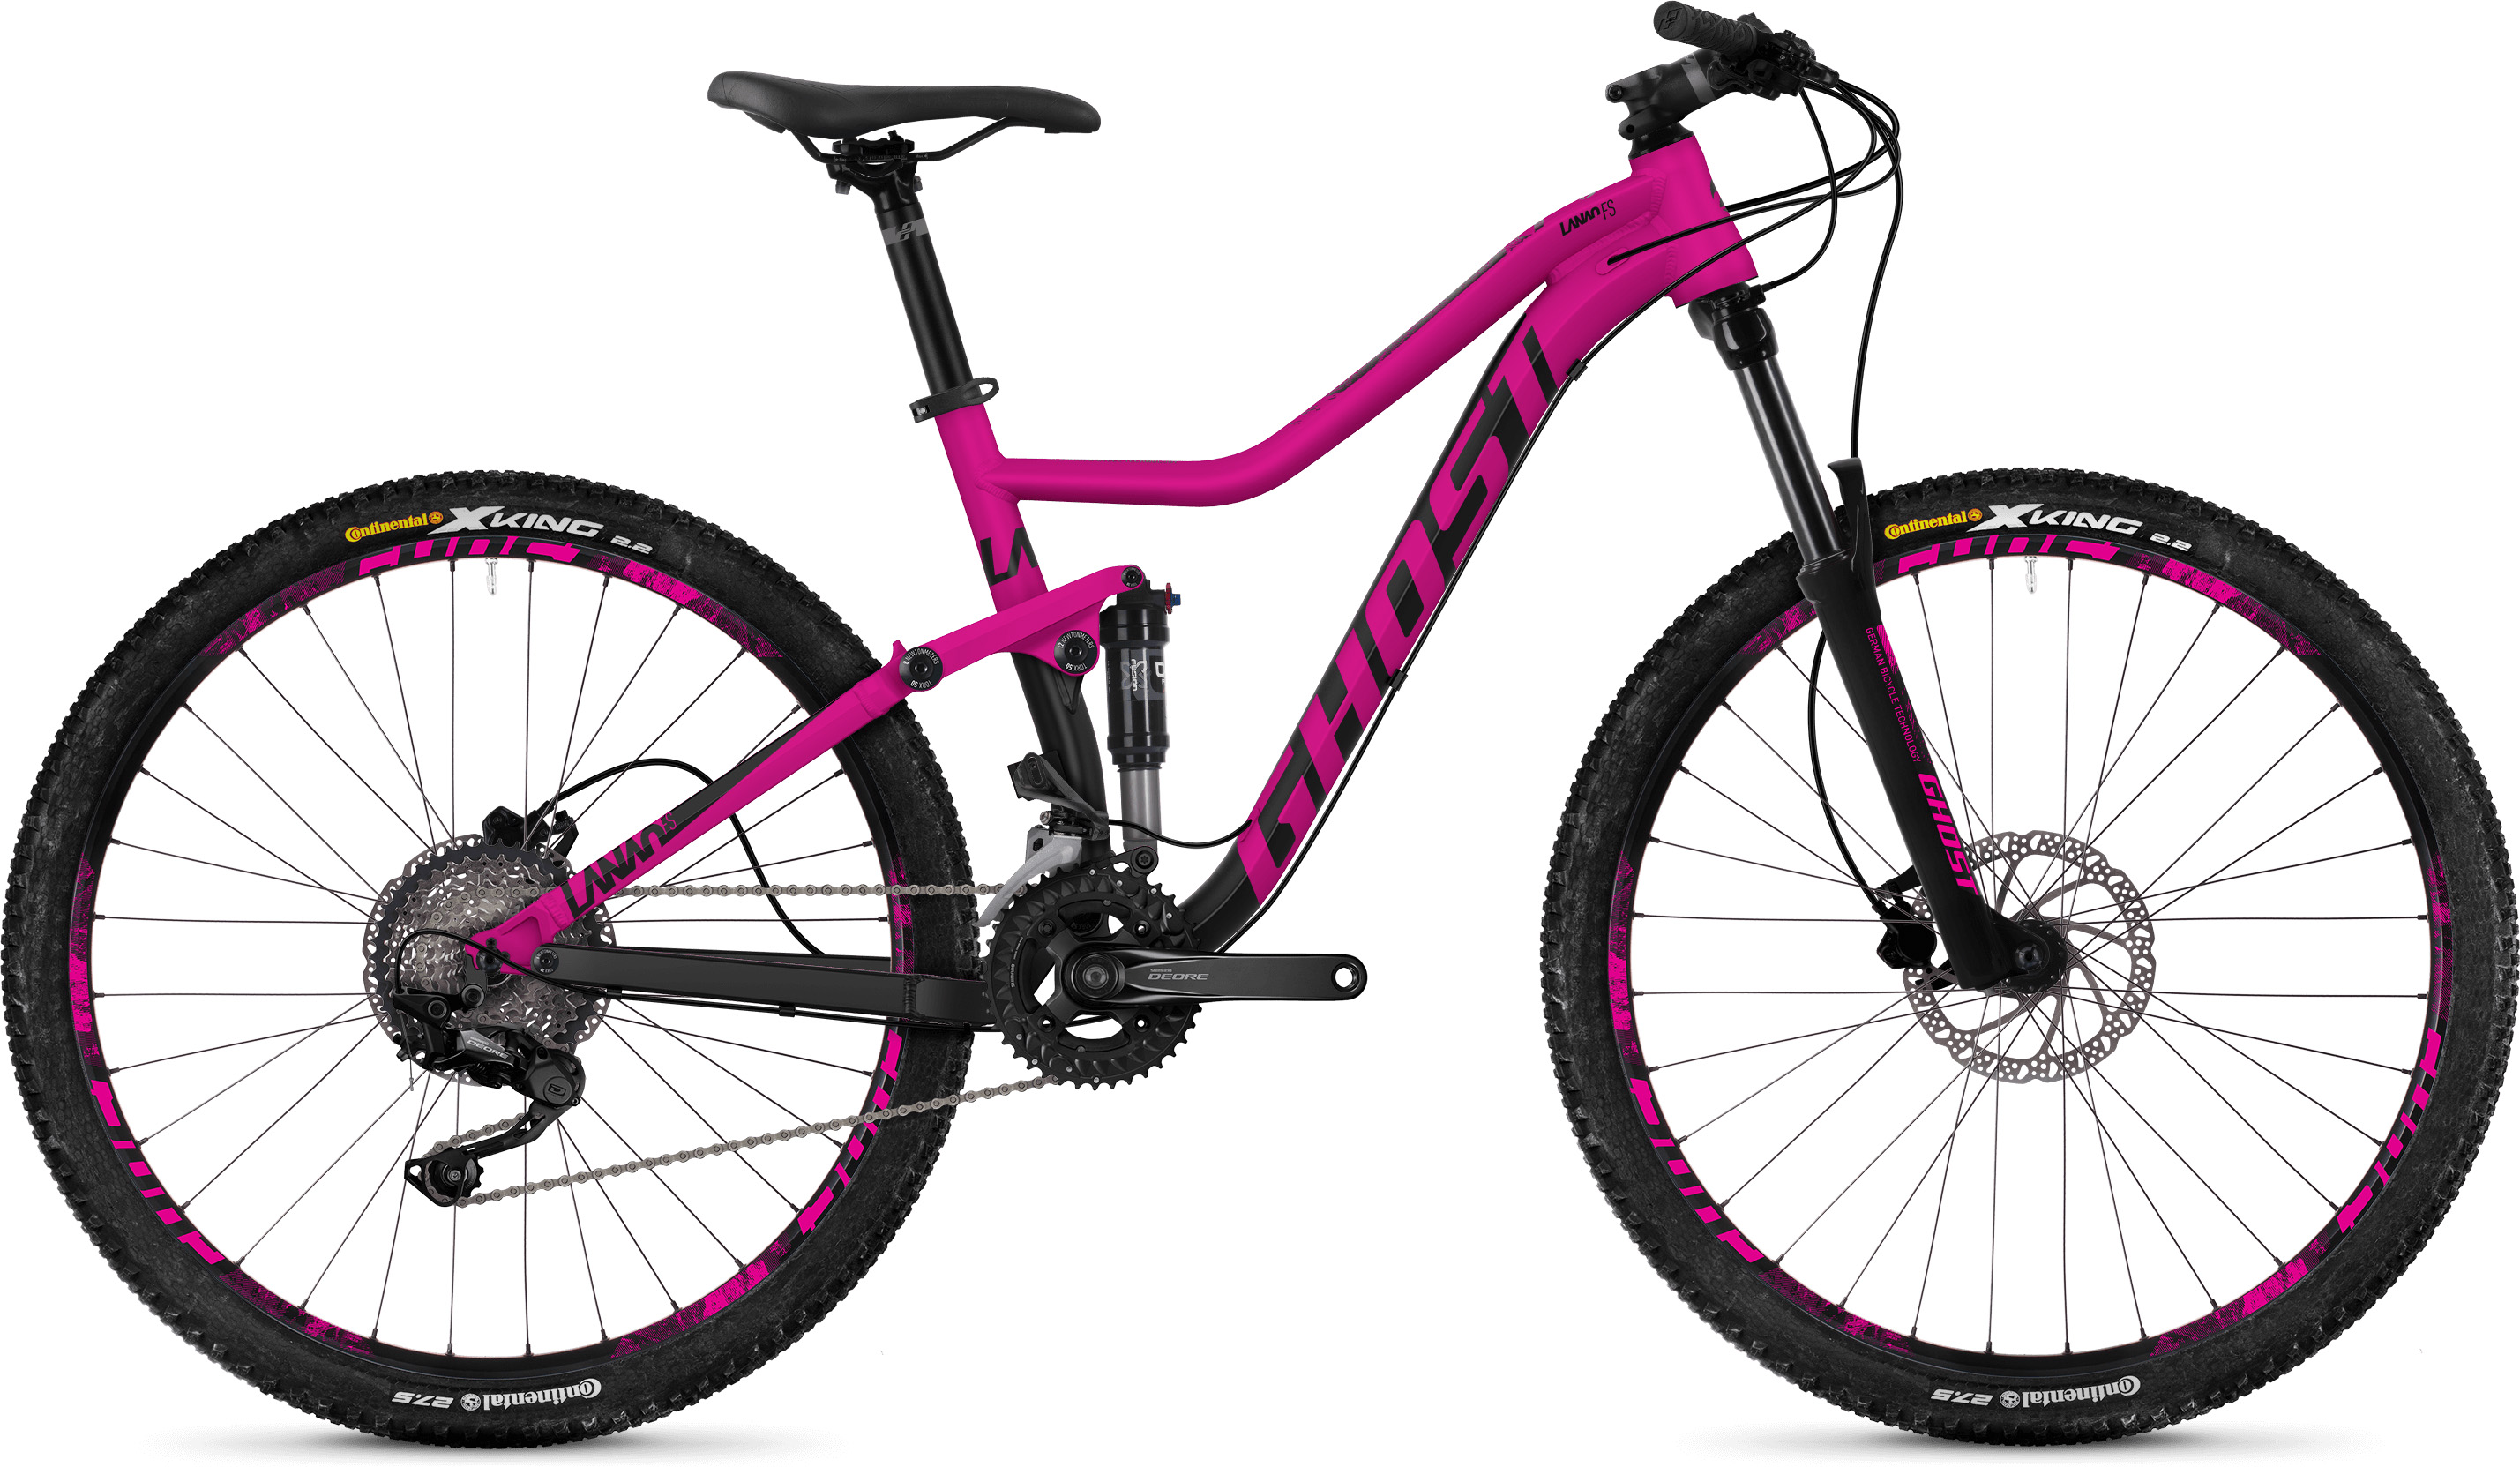 Best Mountain Bikes >> Best Mountain Bikes The Top 15 For 2019 What S Worth Buying